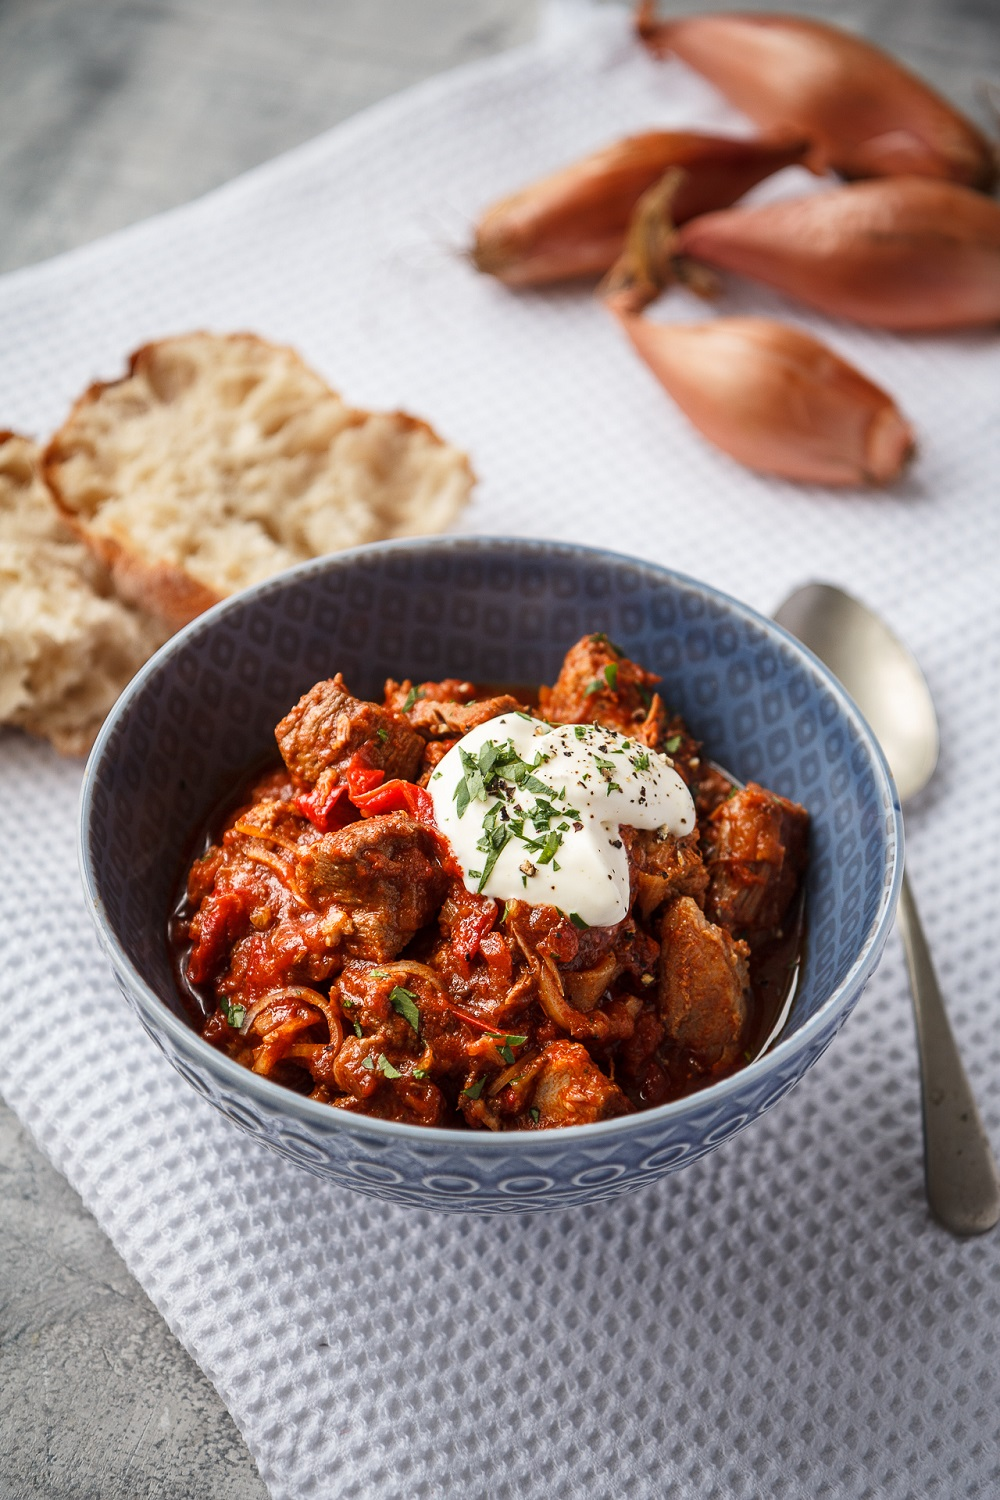 Slow Cooker Pork, Shallot, Red Pepper Goulash